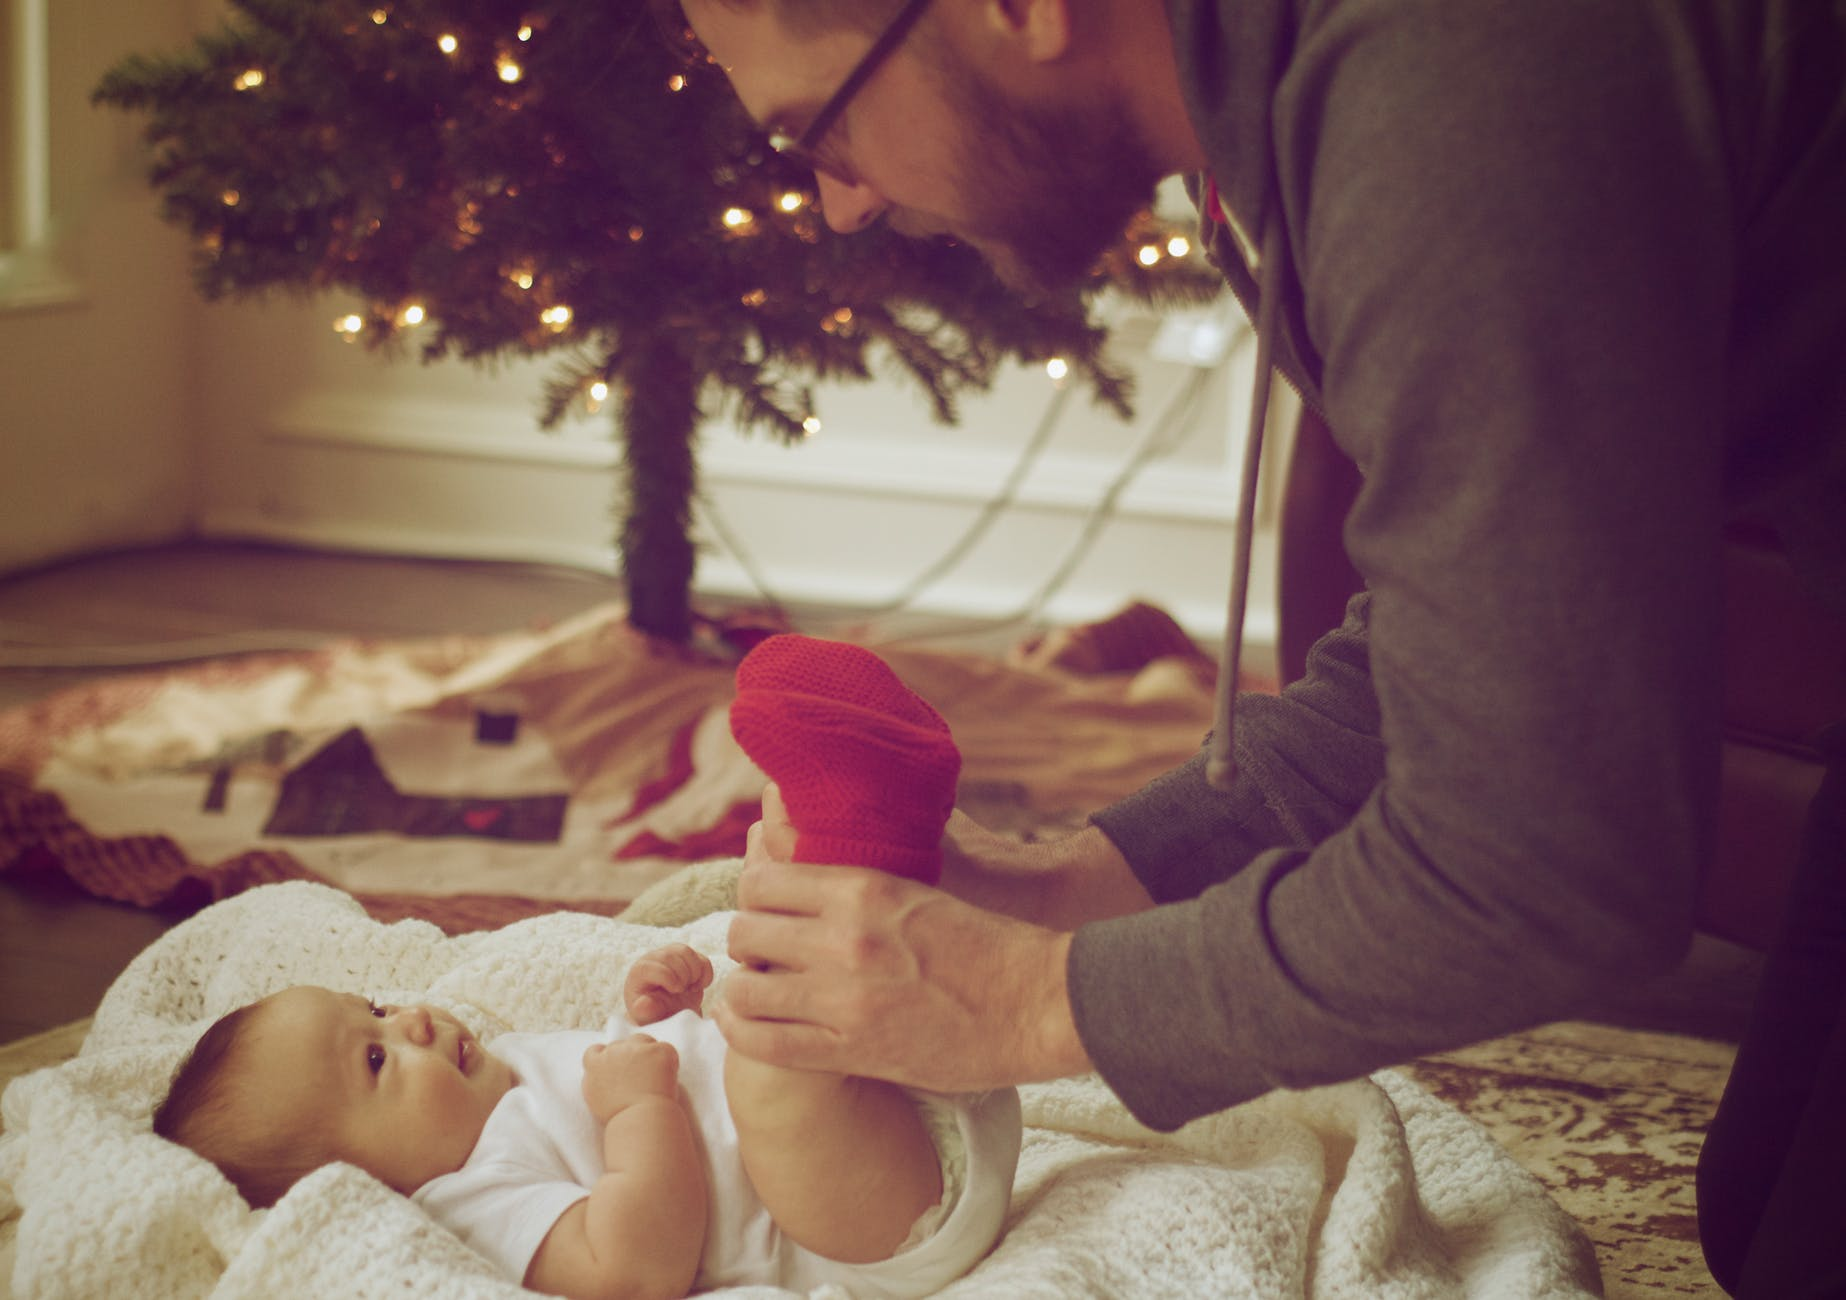 A photo of a doting father taking care of his child and changing diapers. | Photo: Pexels